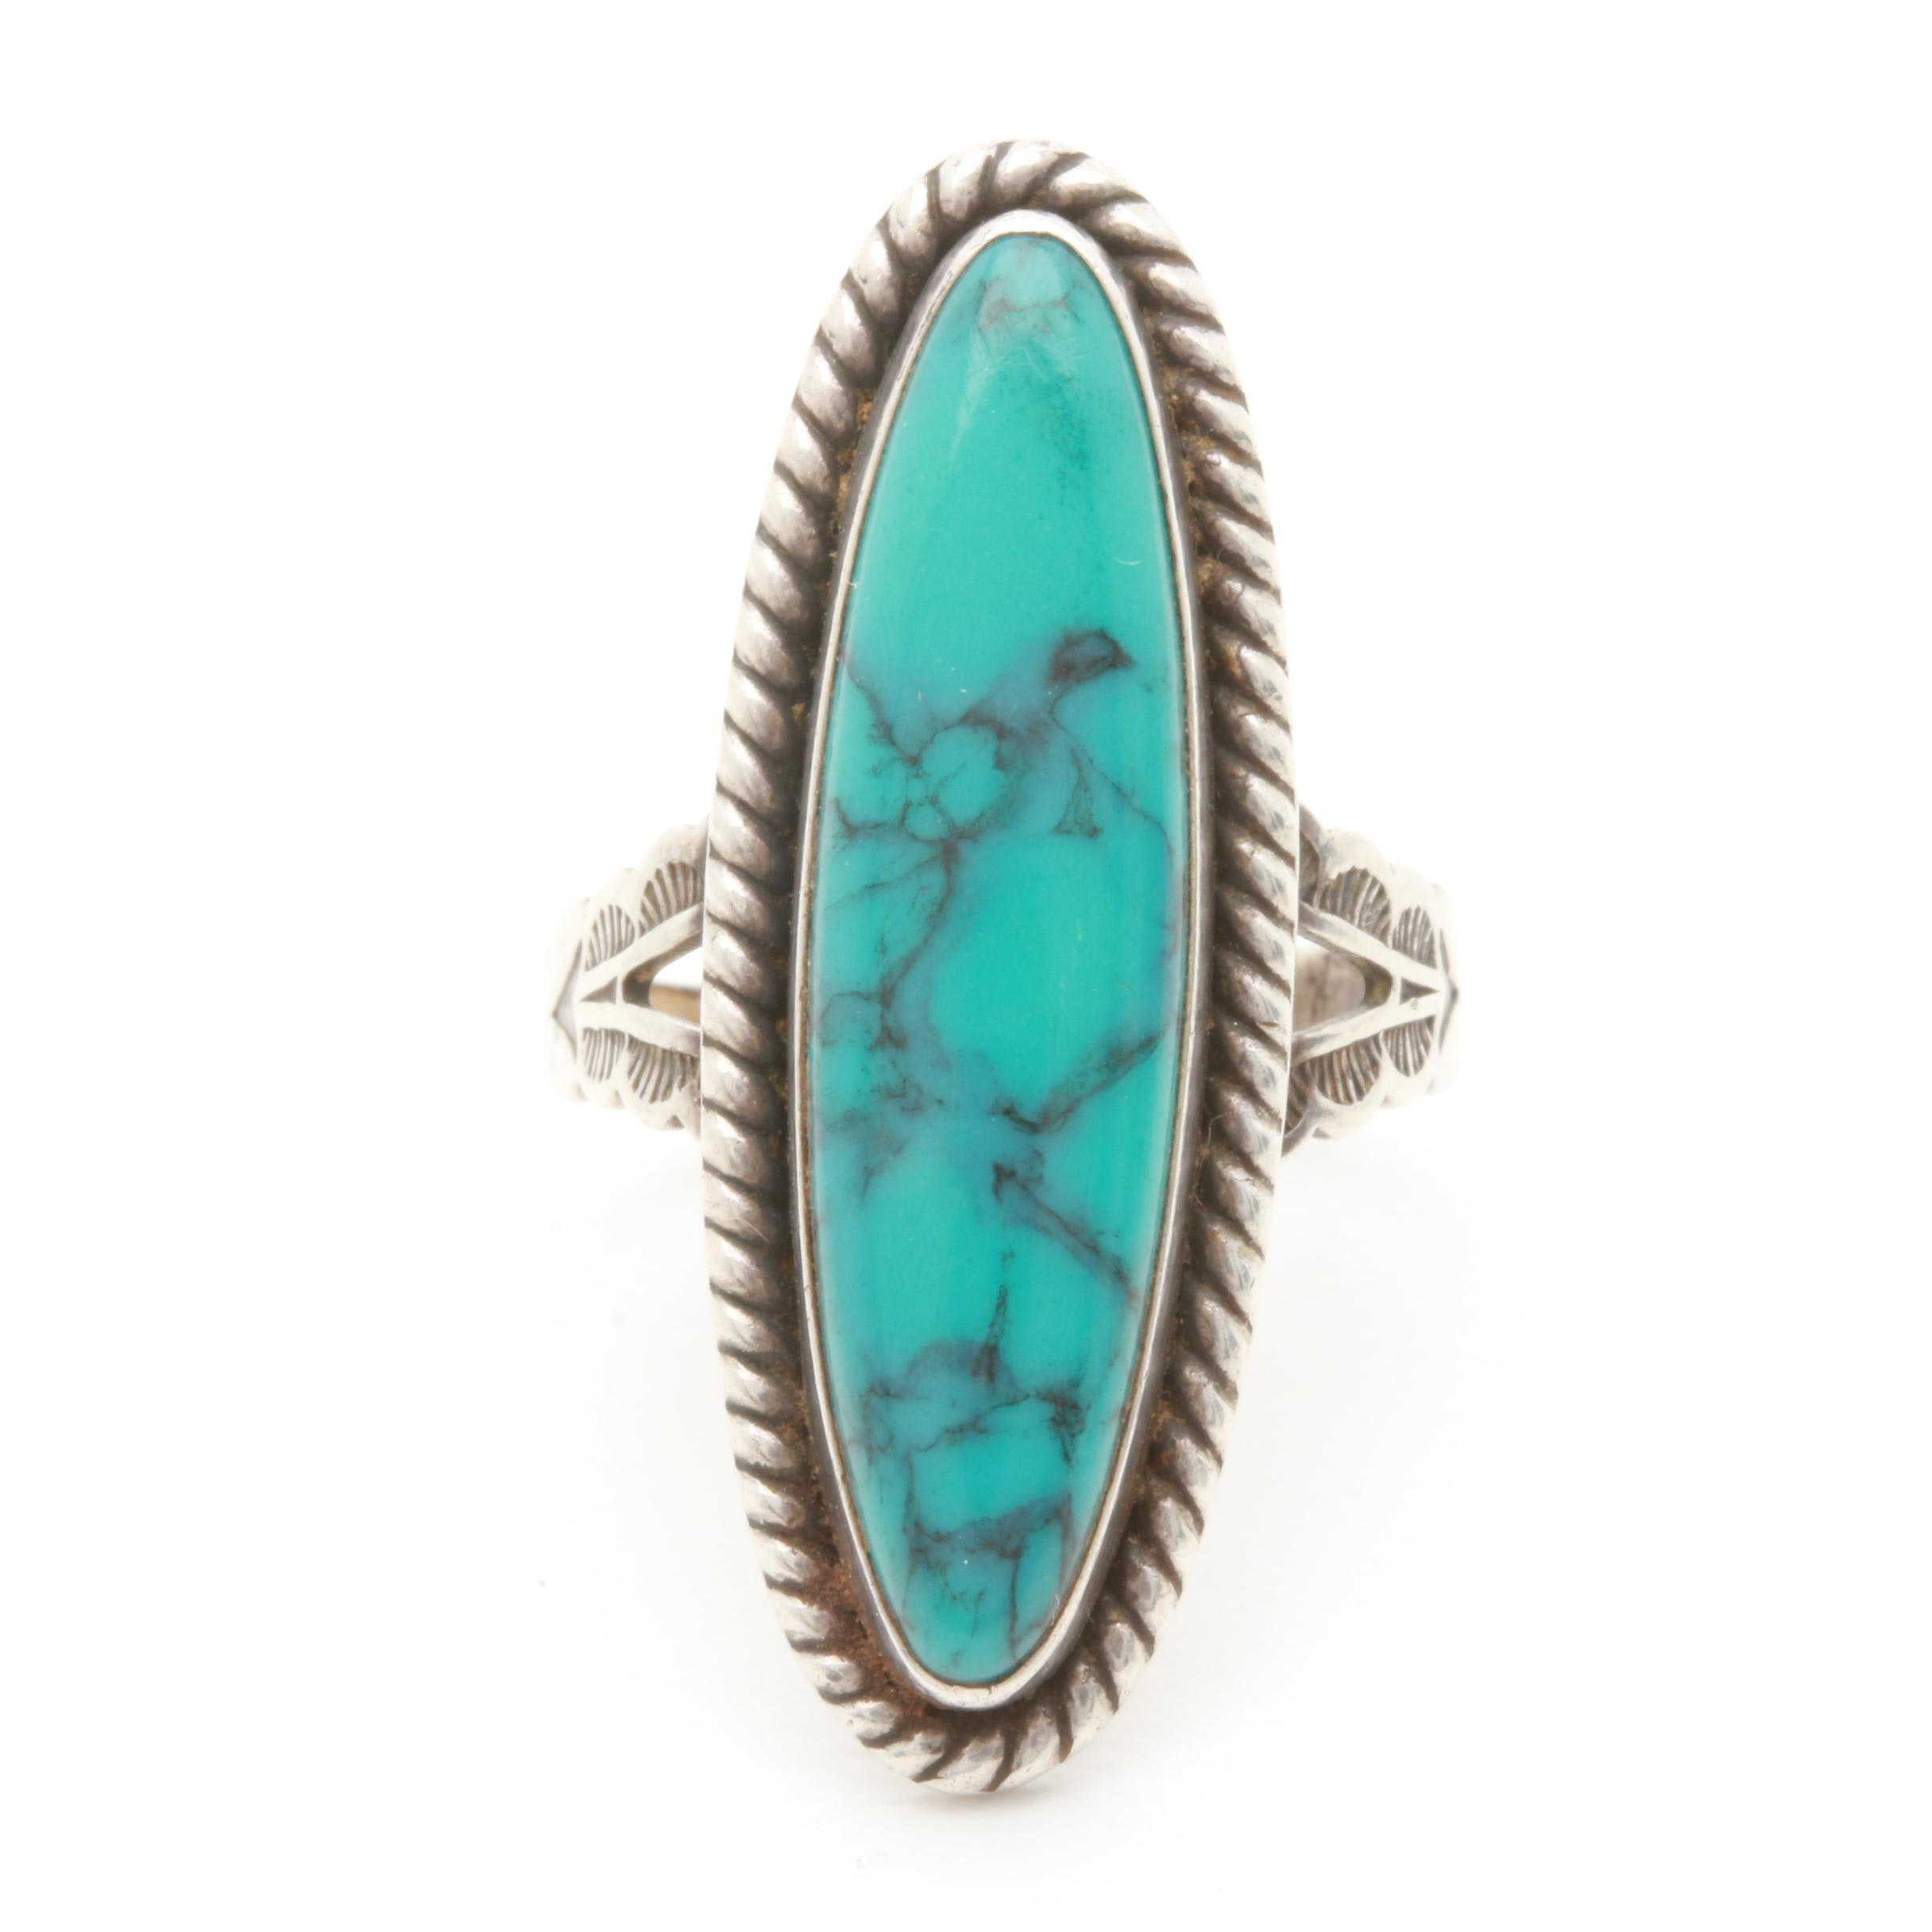 Vintage Southwestern Style Sterling Silver Imitation Turquoise Ring